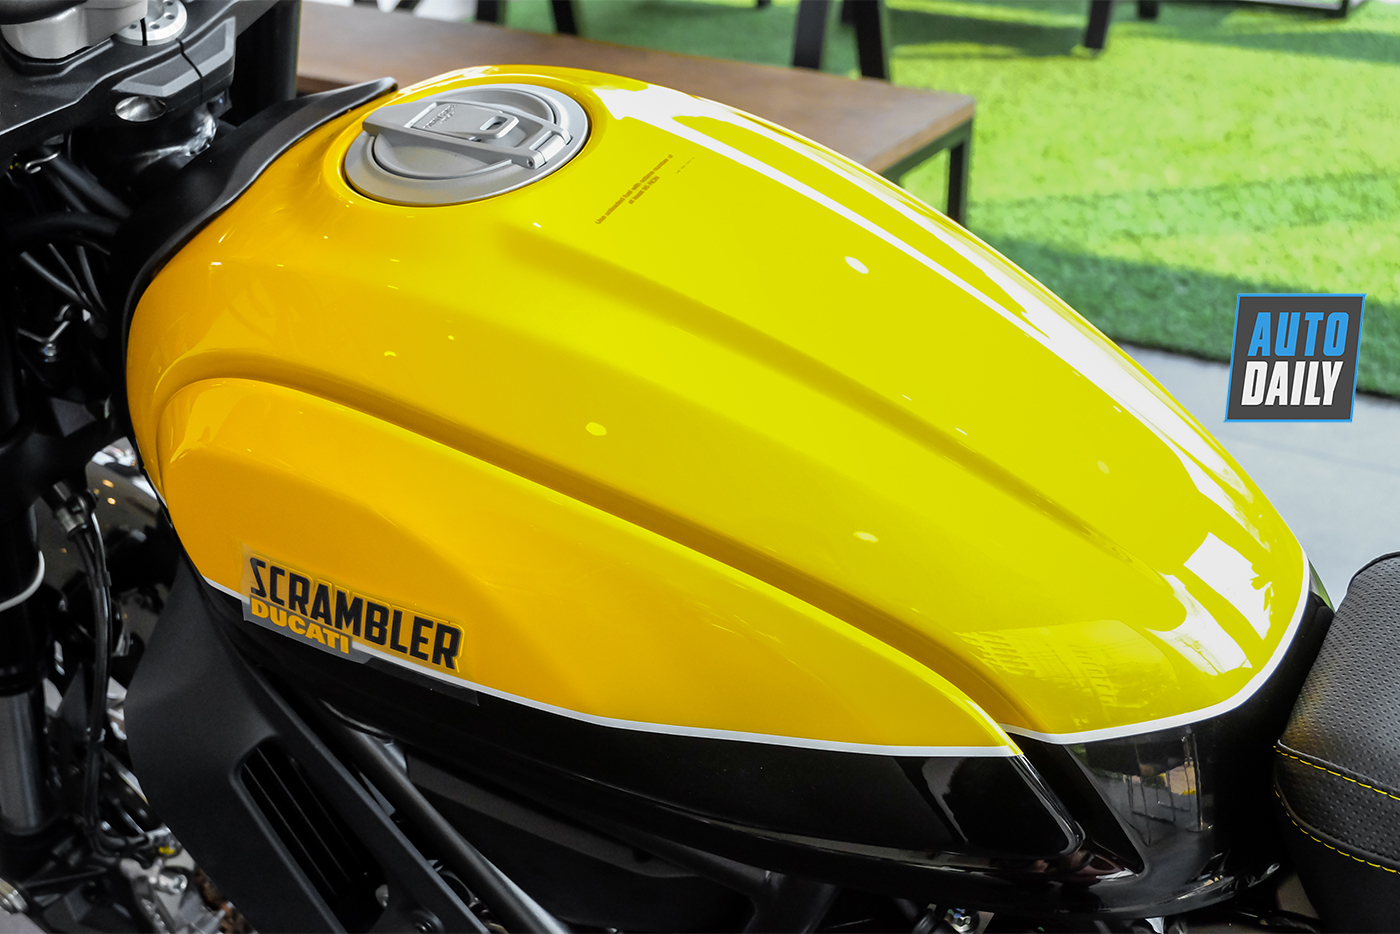 ducati-scrambler-full-throttle-2019-7.jpg